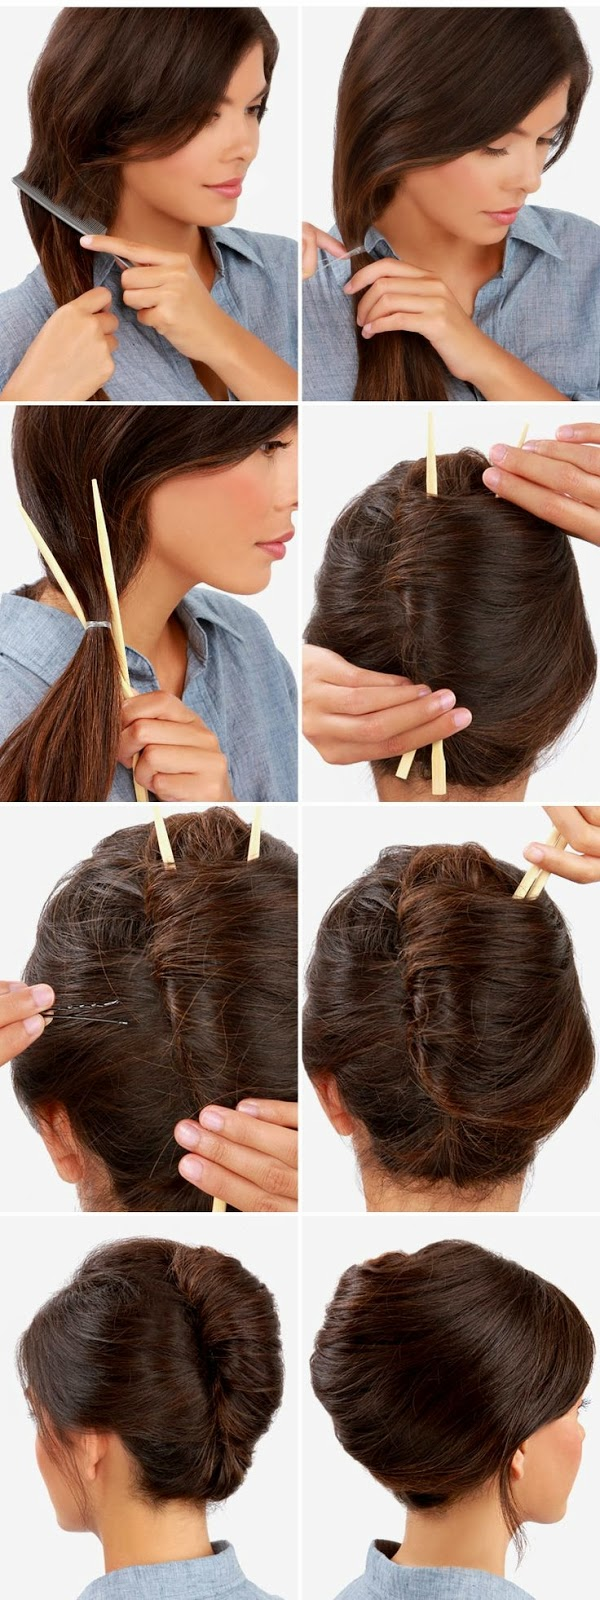 Hairstyles And Women Attire Twisted Bun Hair Tutorial